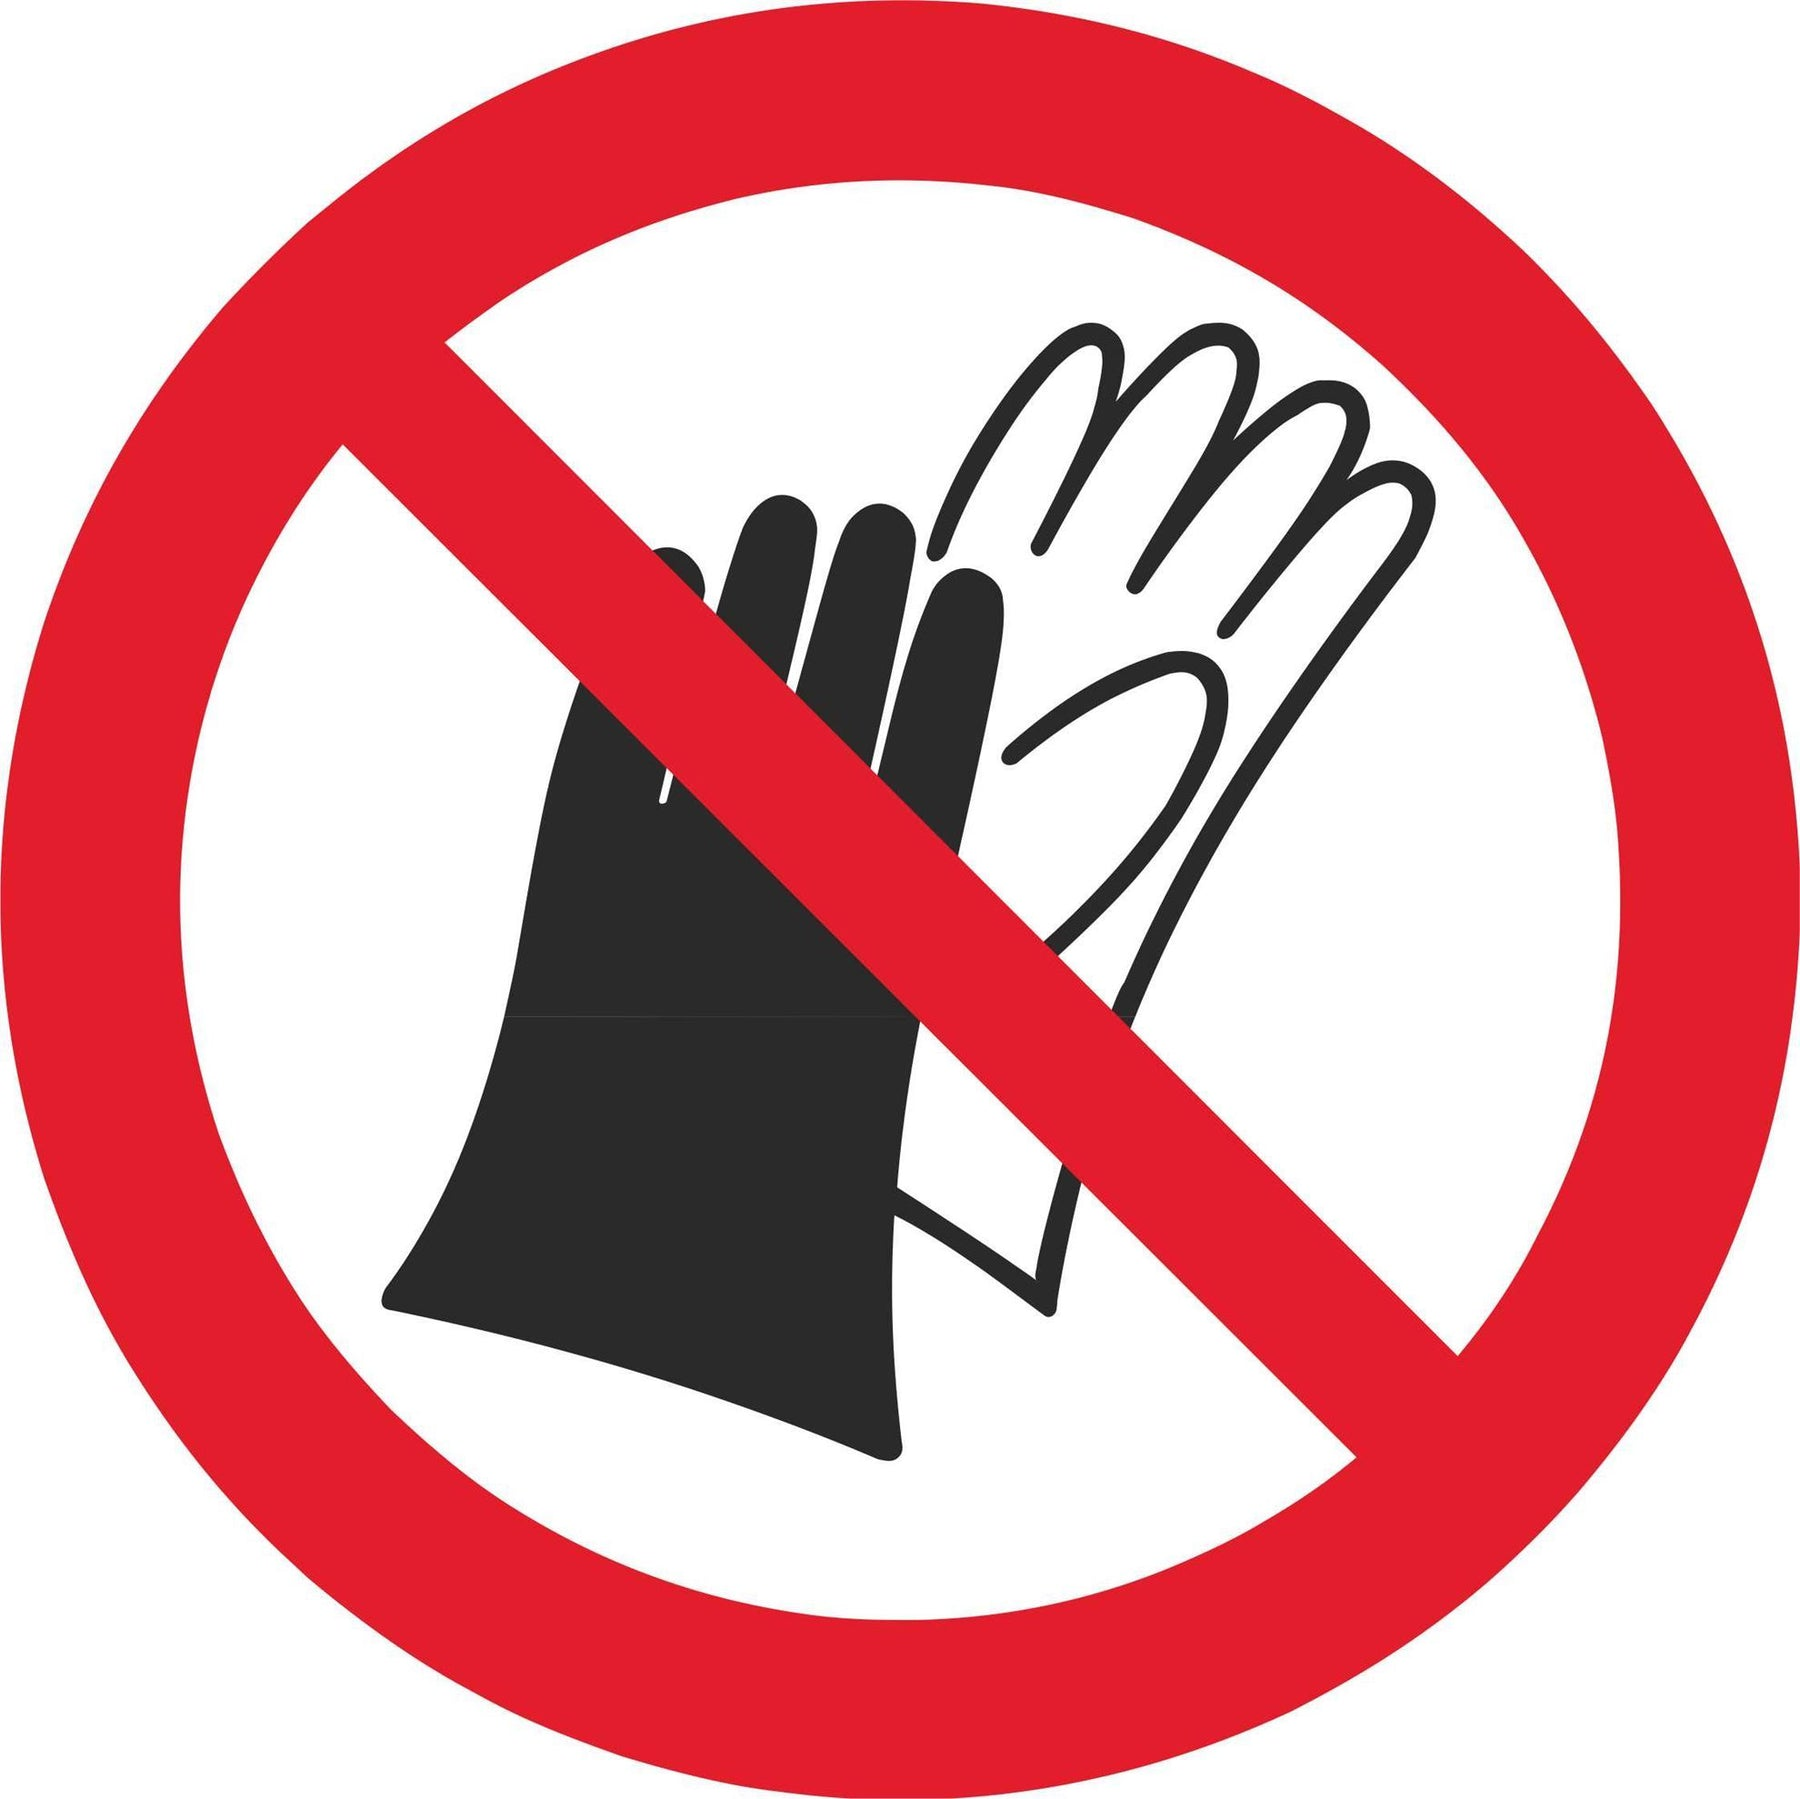 Do not wear gloves - Symbol sticker sheet